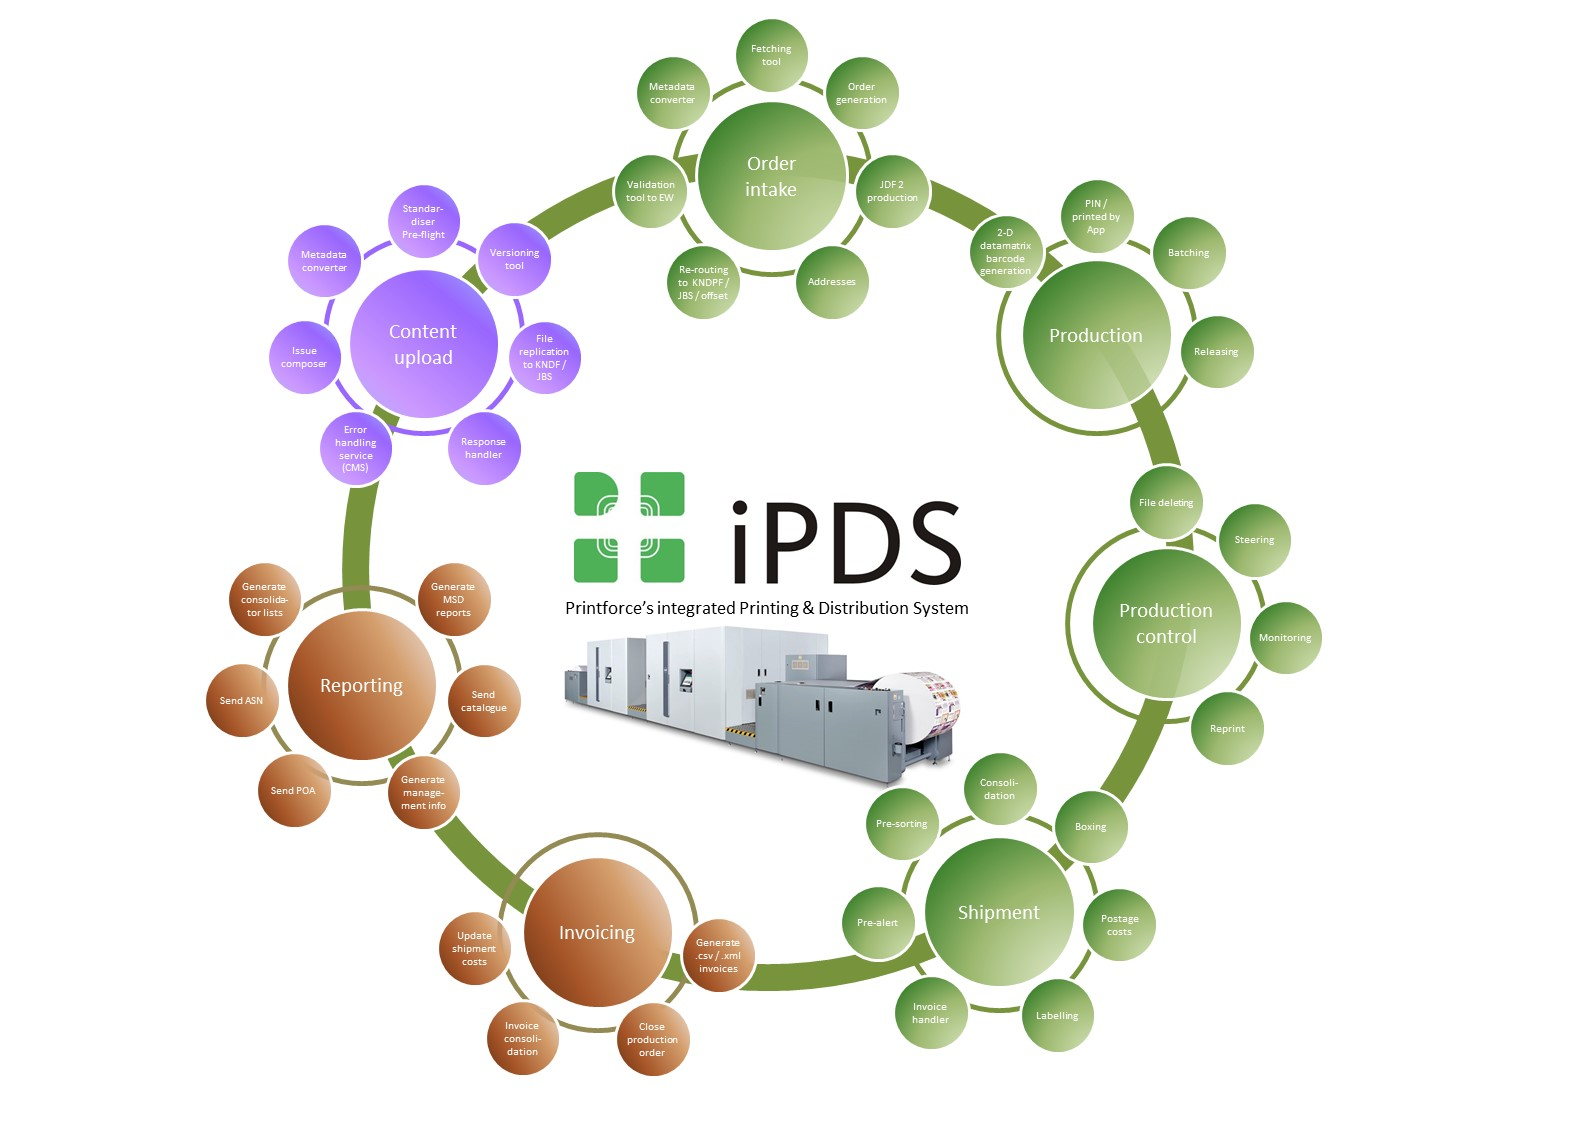 iPDS workflow diagram II